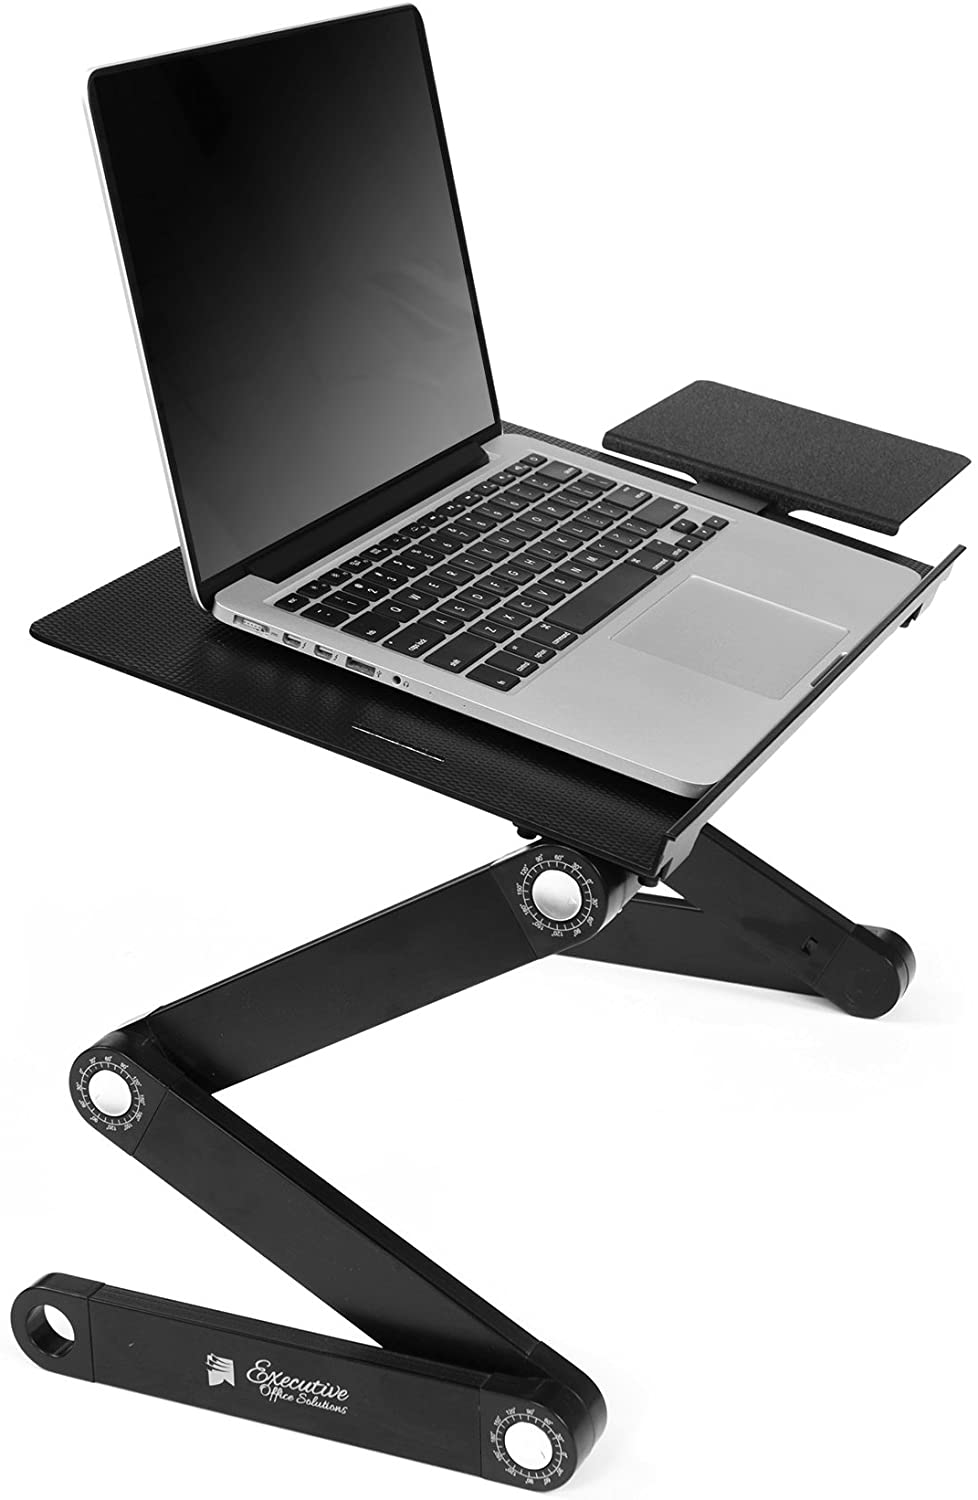 Top 15 Laptop Bed Table Desks (Lapdesks) of [year] 1